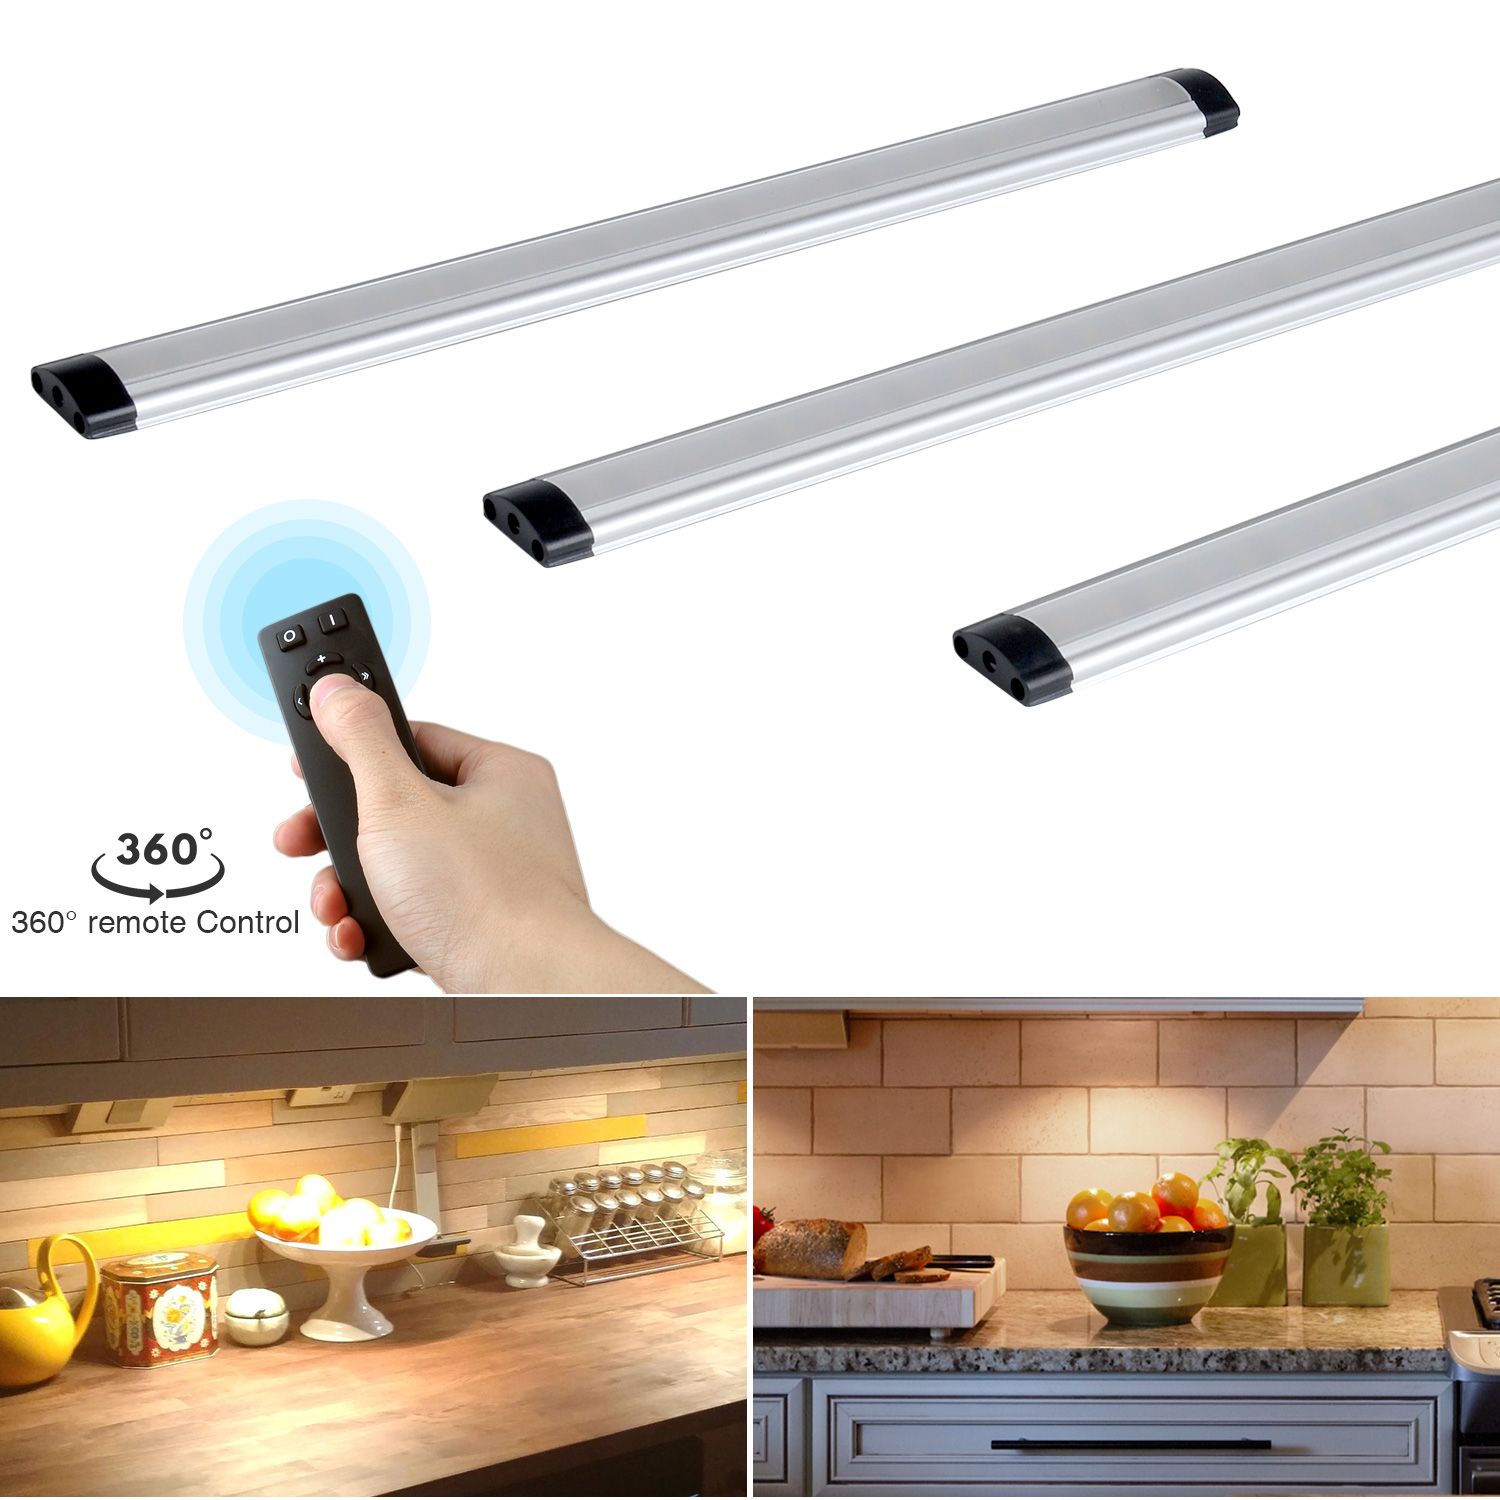 Remote control LED Kitchen Under Cabinet Rigid Strip Light LED Rigid Bar Light Kit Closet Wardrobe LED Bar Lamp